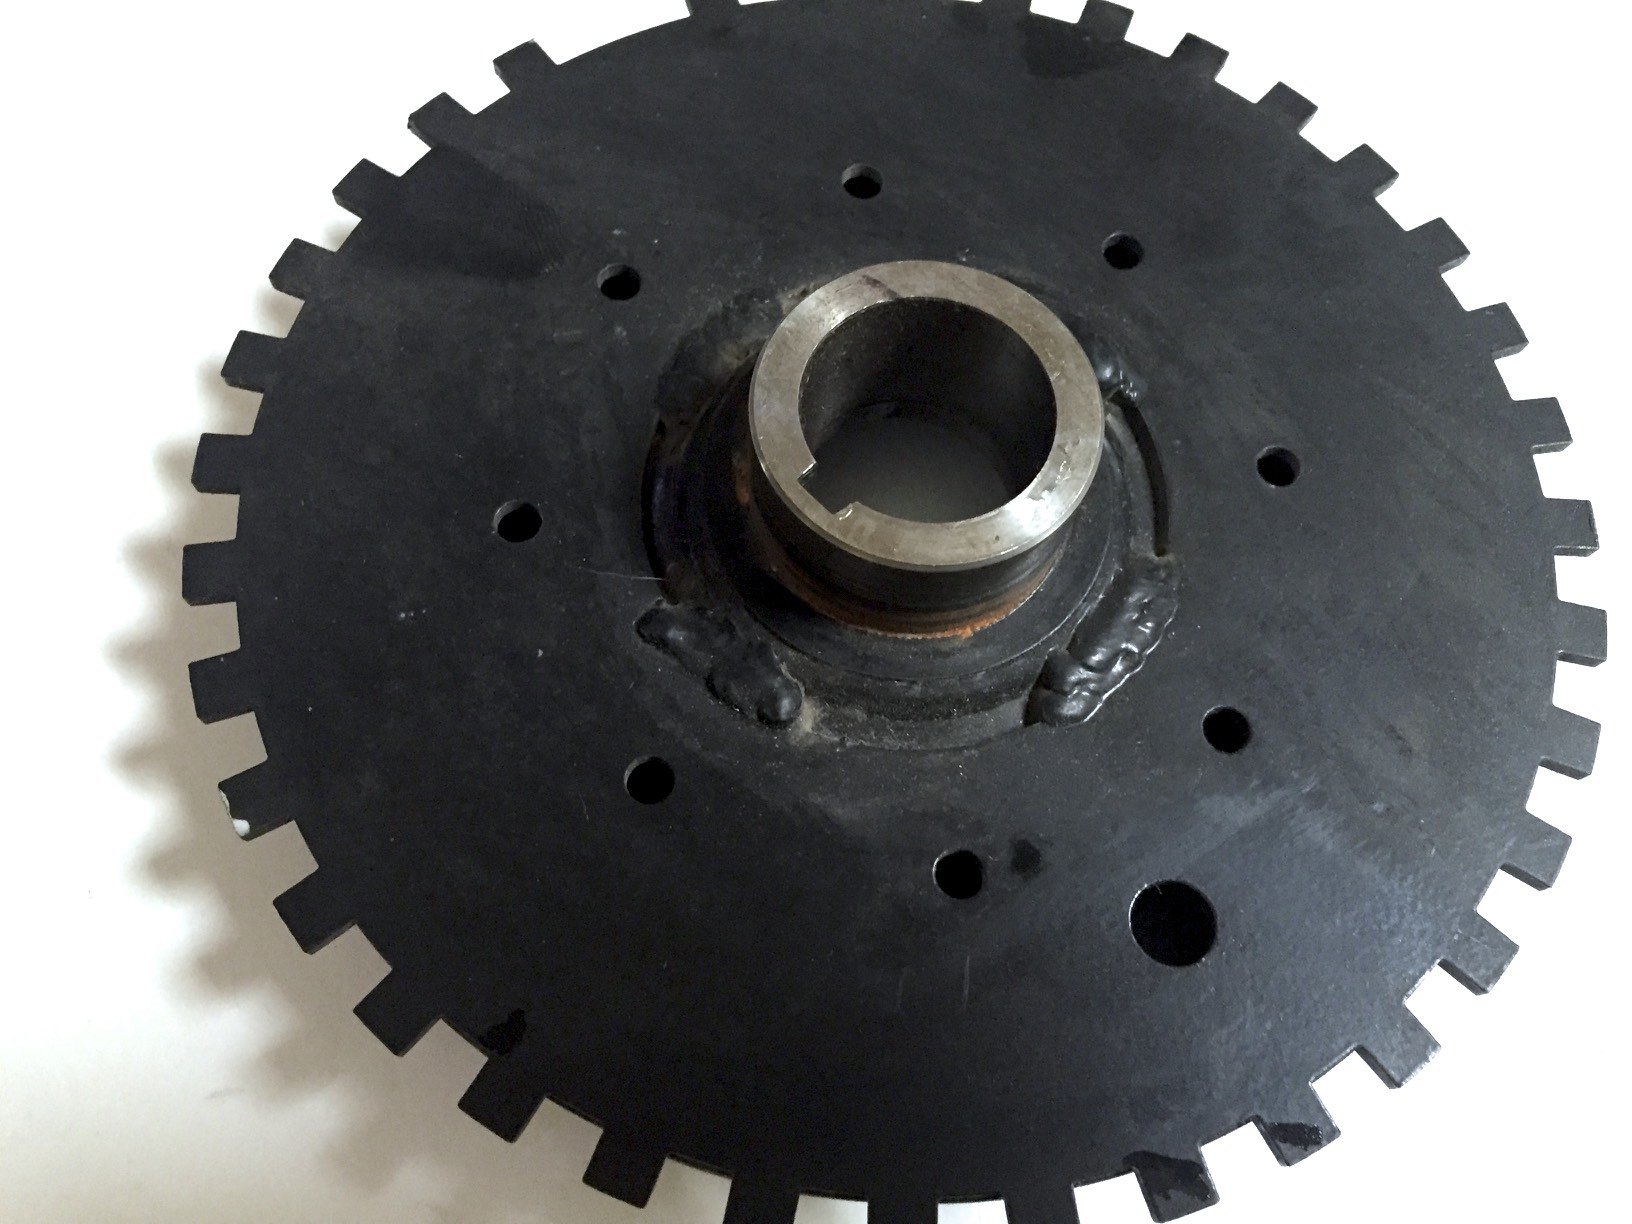 The back of the pulley, with the gear tack-welded in four places. The missing tooth is visible near the top of the image.